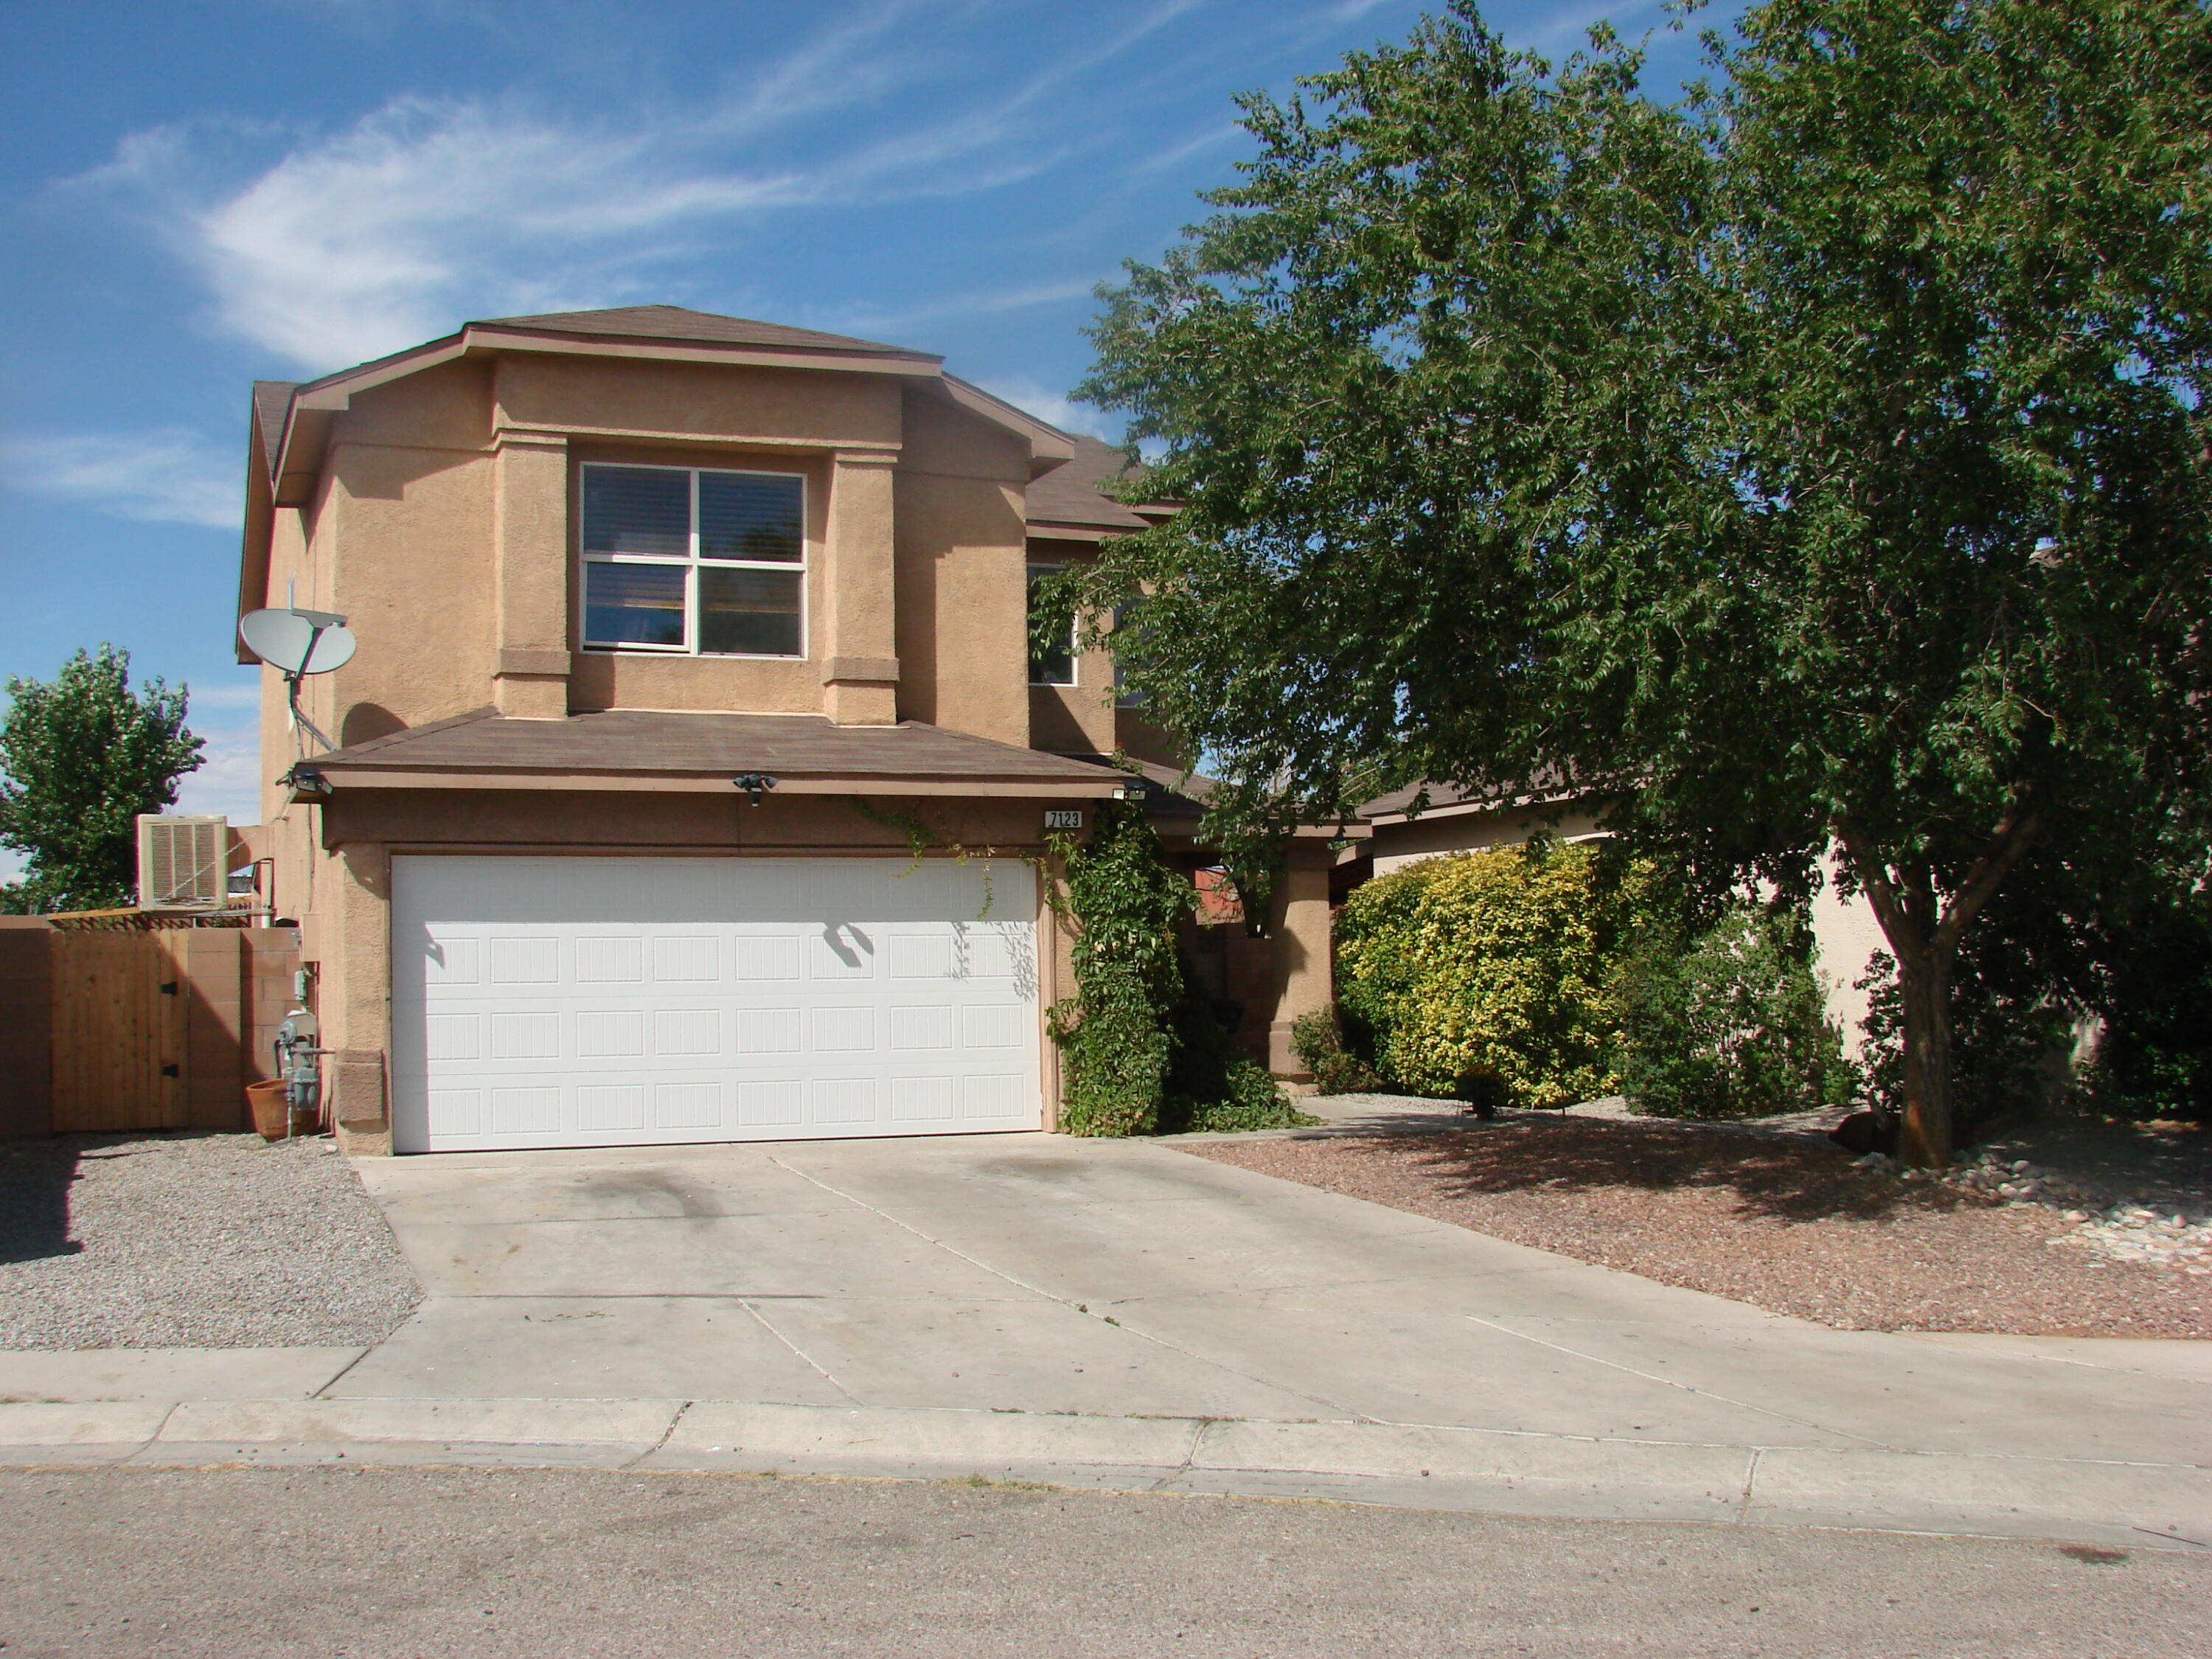 Location! Location! Location! This 2 Story Home sits on a Quiet South Valley Street and has a Gorgeous Floor Plan, Beautiful Living Room with Pellet Stove/Fireplace and Custom Ceramic Tile Accents throughout.  Cozy Open Kitchen with Spacious Dining Area, 4 Spacious Bedrooms located on upper level with Walk in Closets and Ceiling Fans. Low Maintenance Backyard Patio has a Huge Custom Fireplace and is perfect for Barbeques and Family Gatherings. Brand New Garage Door. This home will not last Long and is ready for Someone to make it their own!